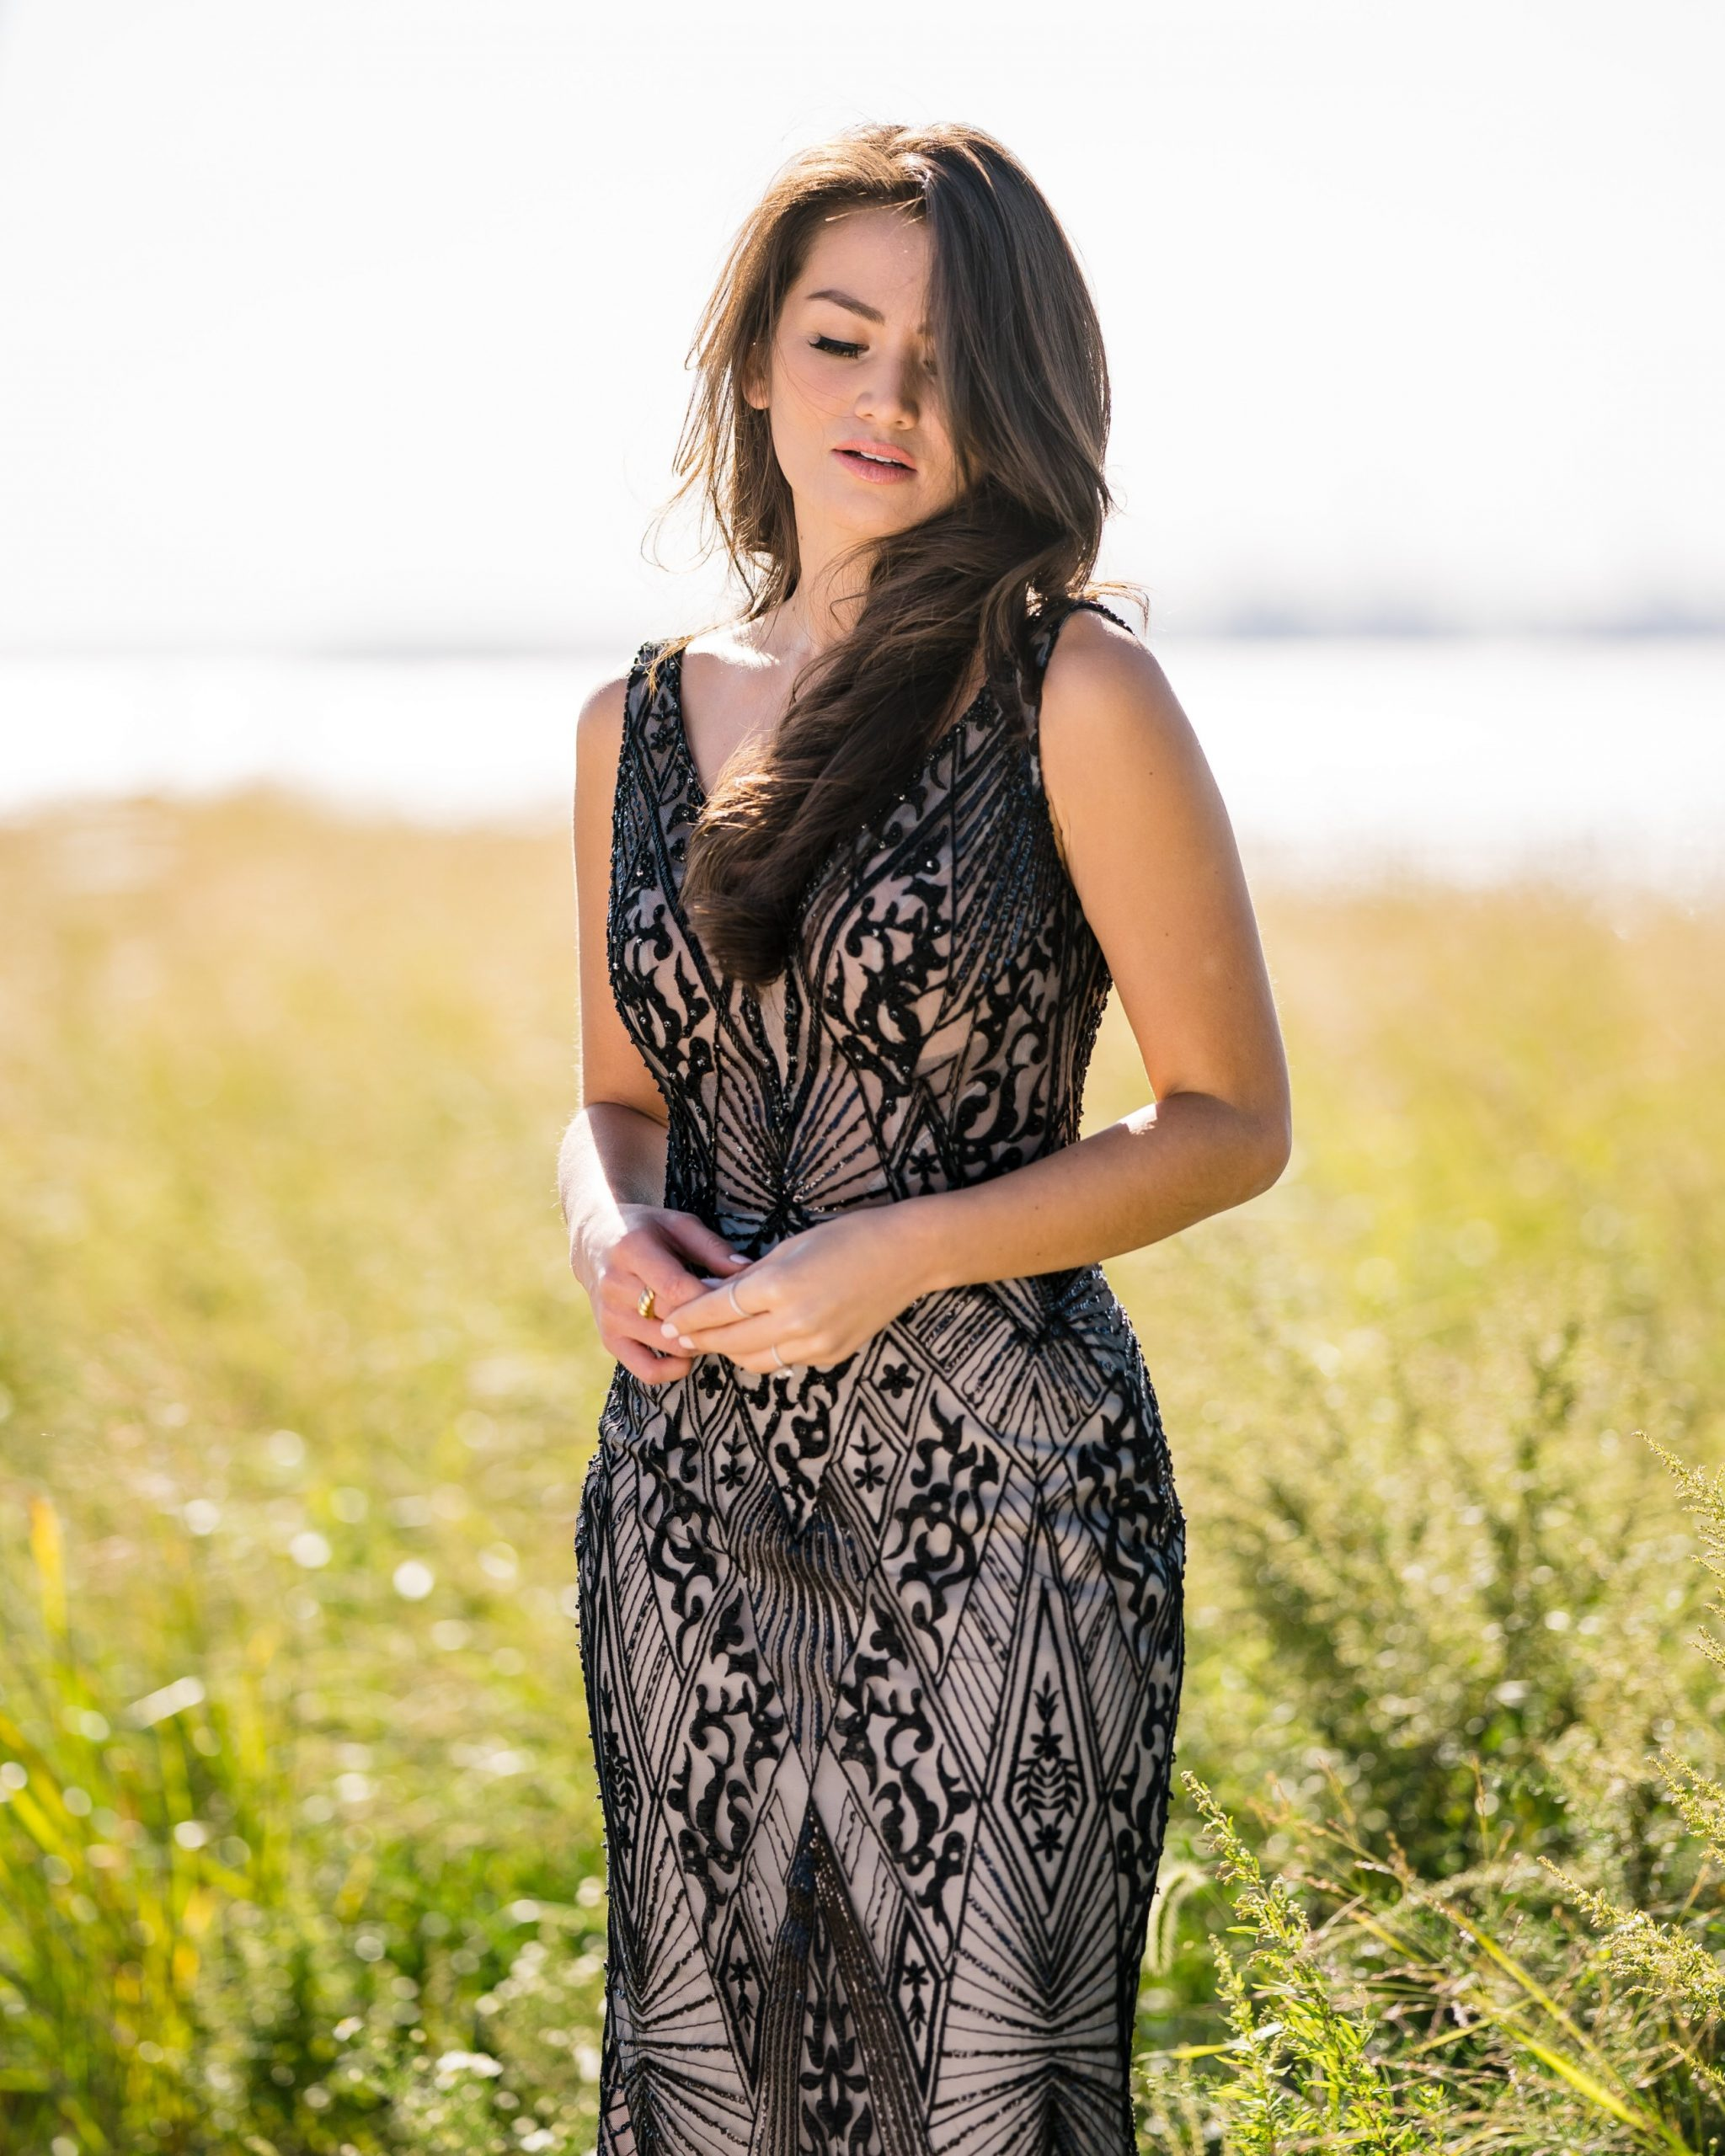 Influencer Caila Quinn Wearing Black Sheath Wedding Dress Called Elaine by Maggie Sottero